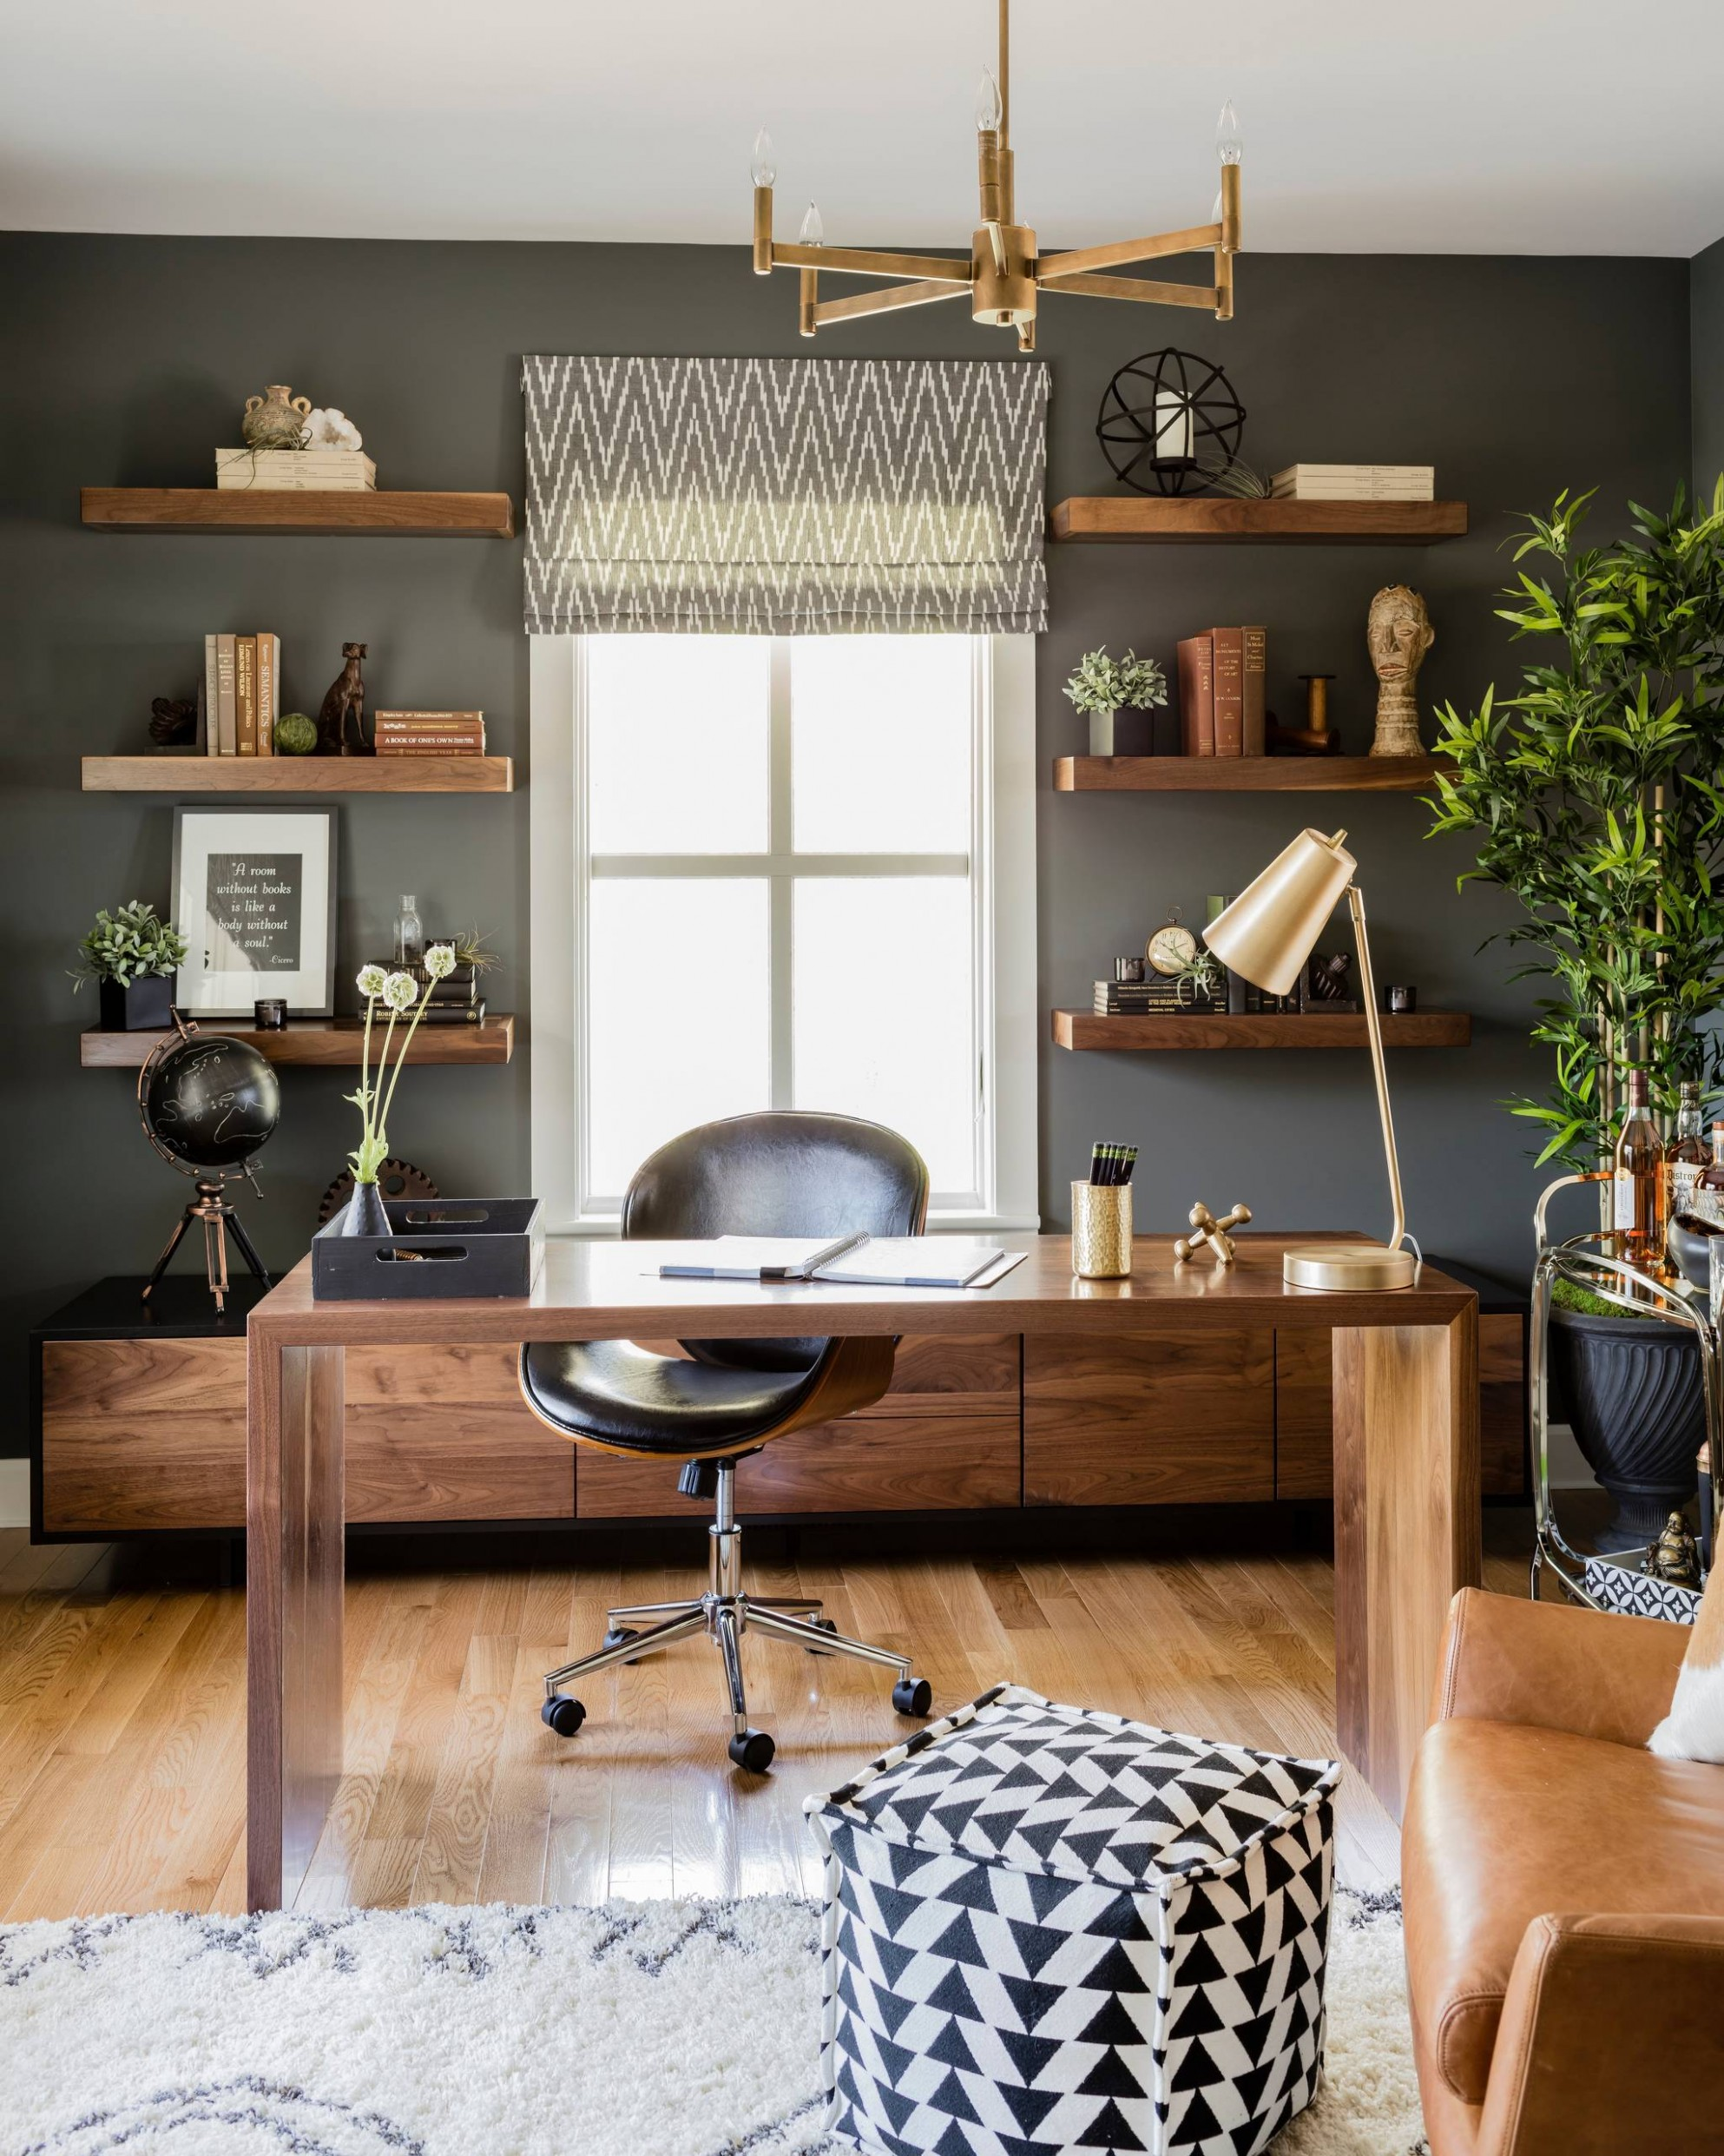 8 Beautiful Home Office Pictures & Ideas October 8  Houzz - Home Office Ideas Houzz